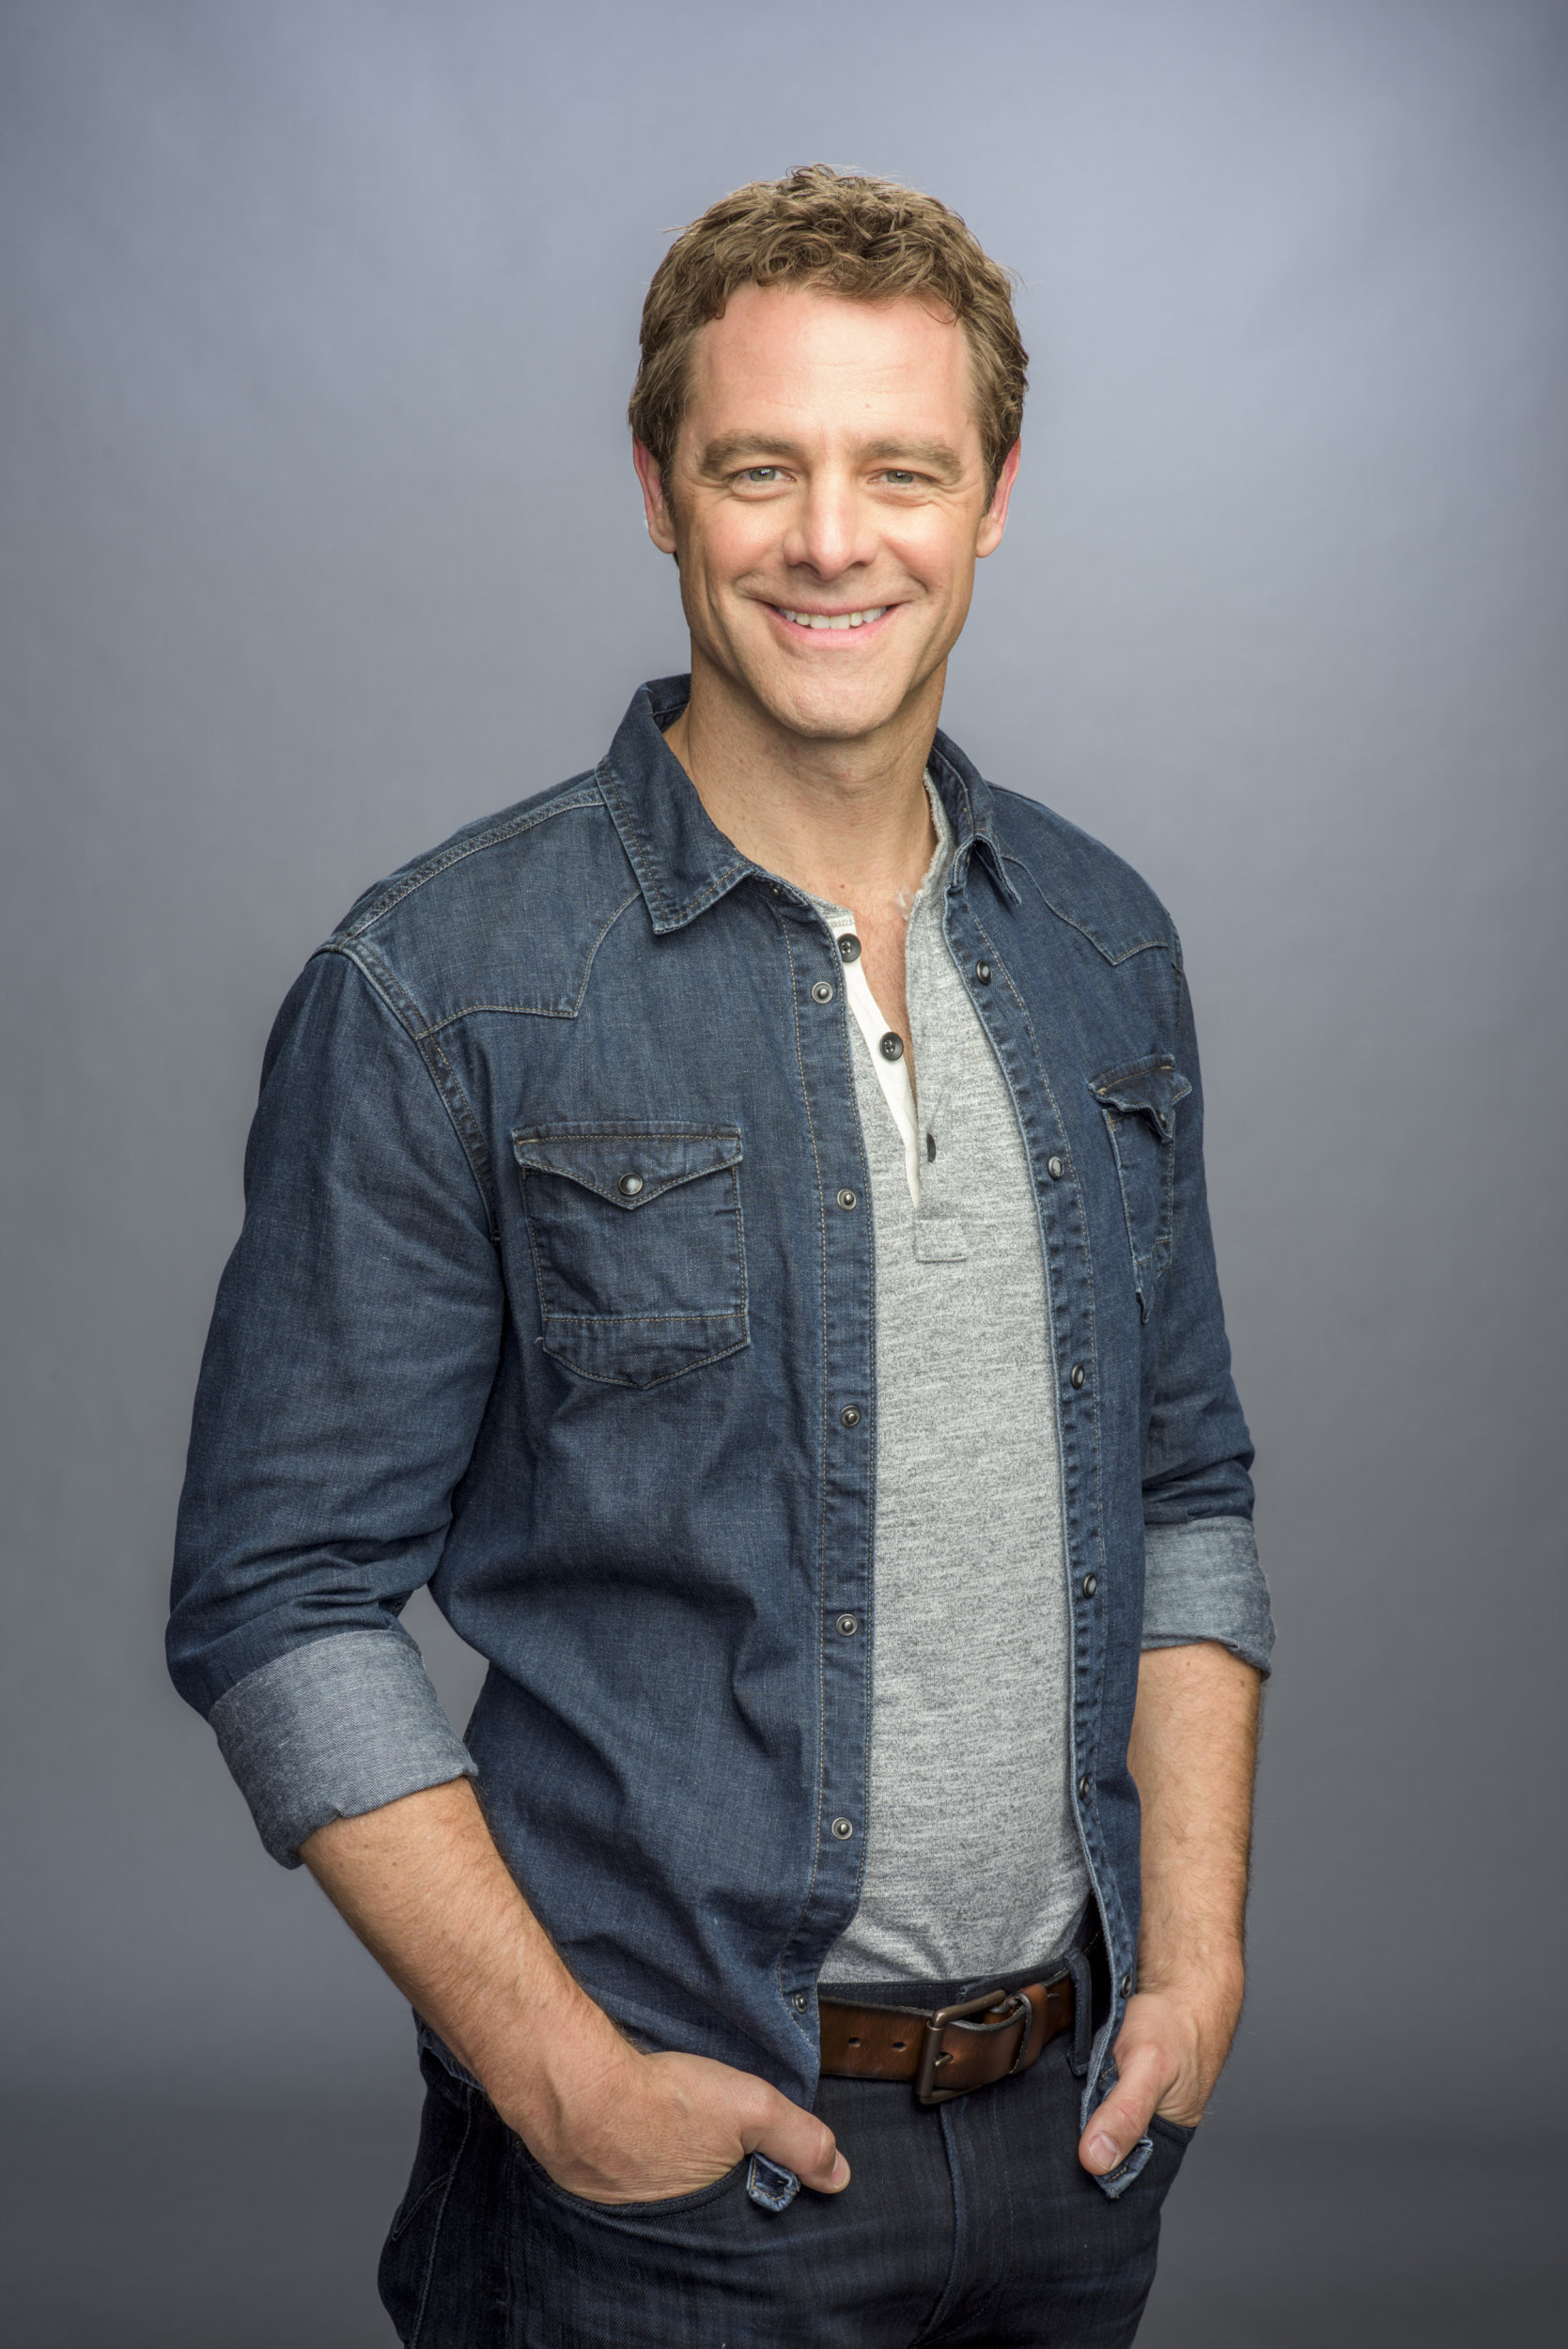 David sutcliffe as nick on charming christmas hallmark channel